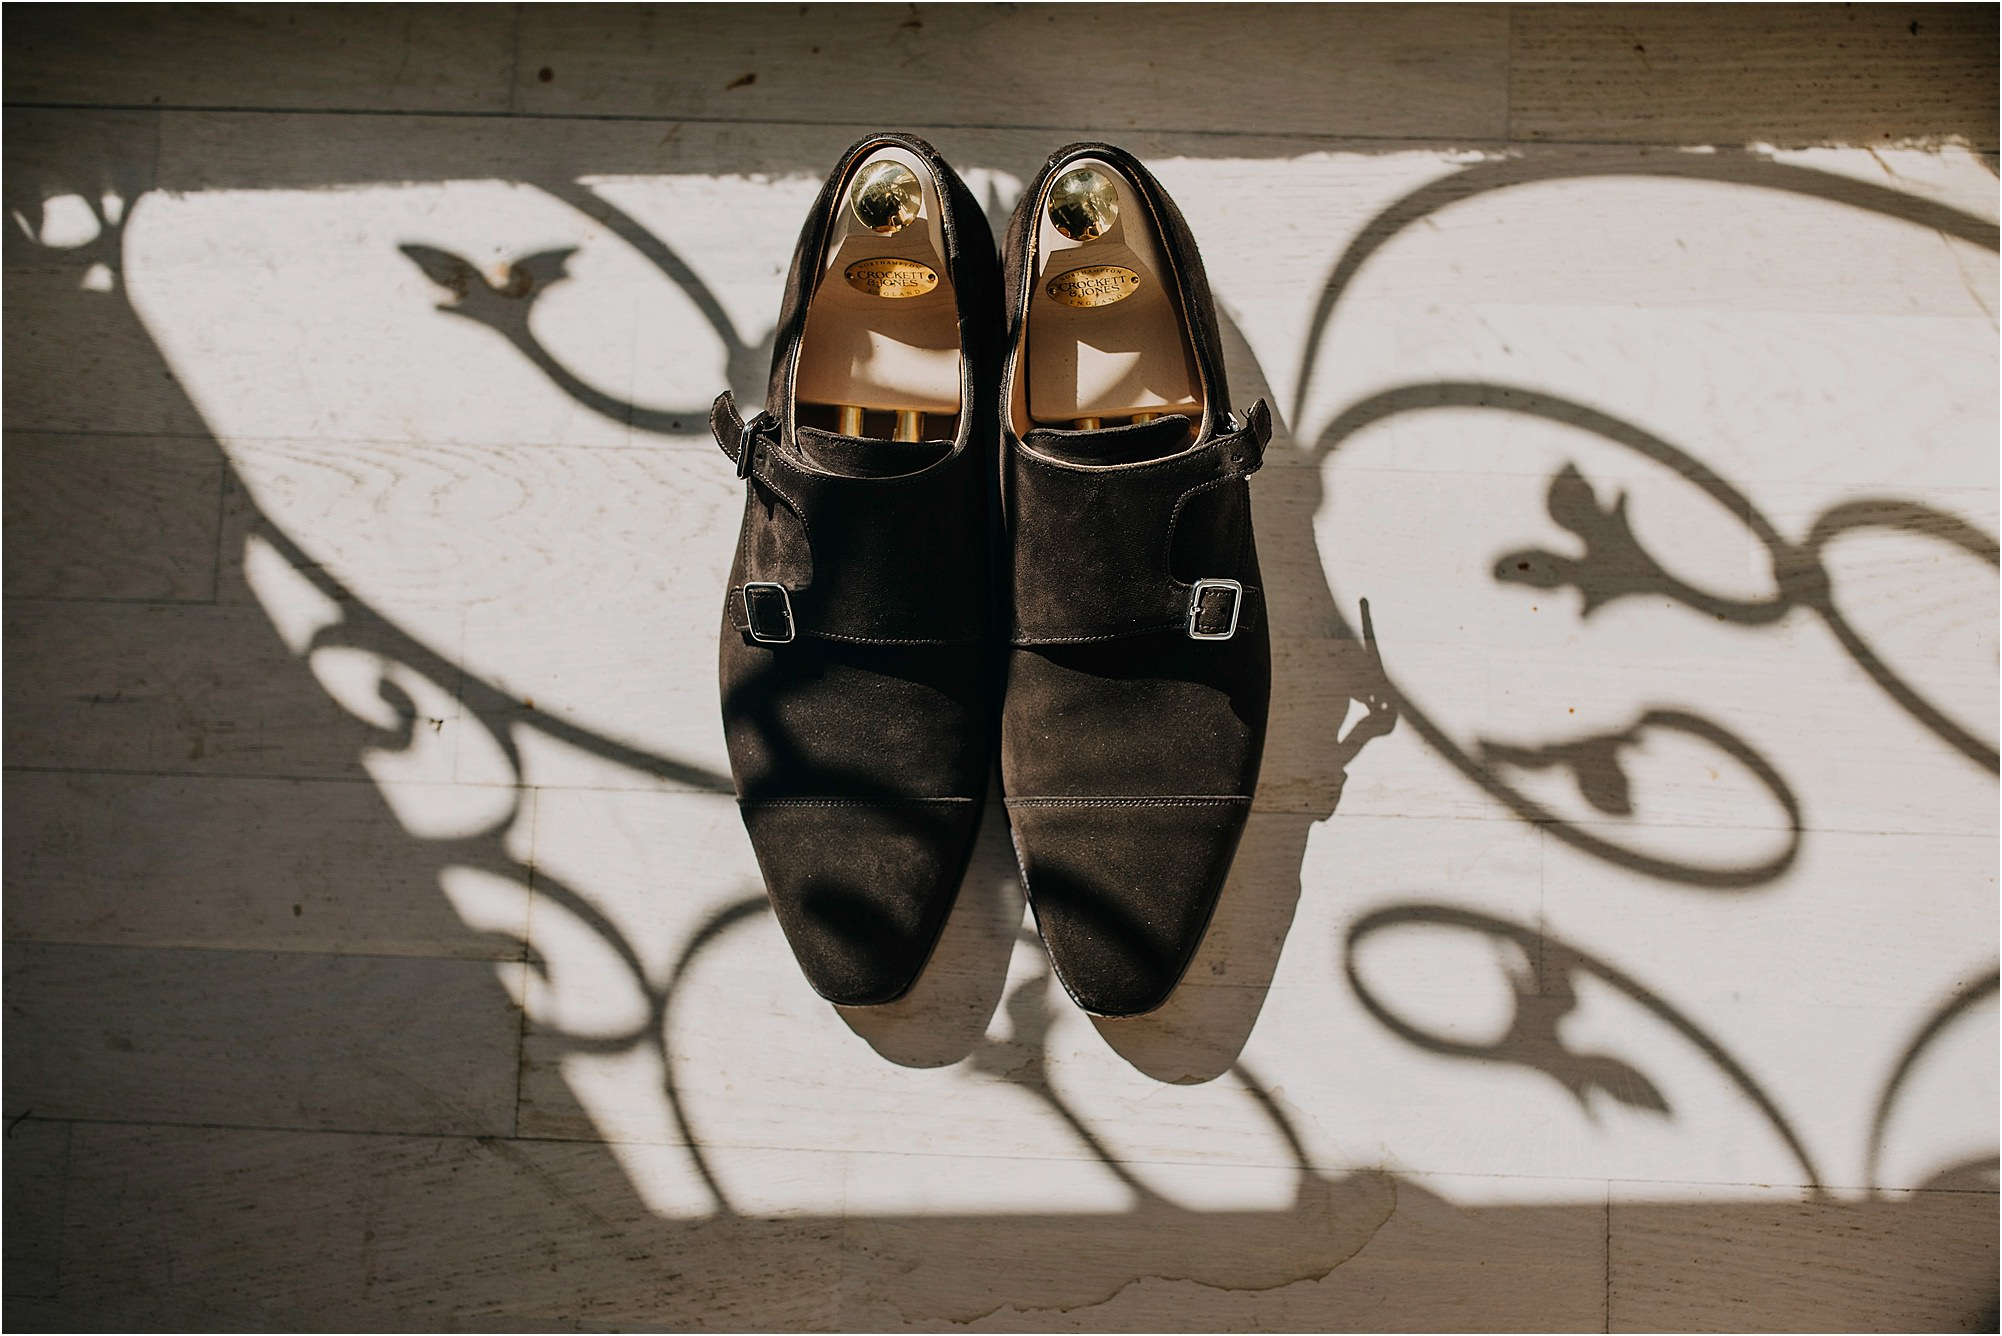 brogues at a chateau la durantie wedding